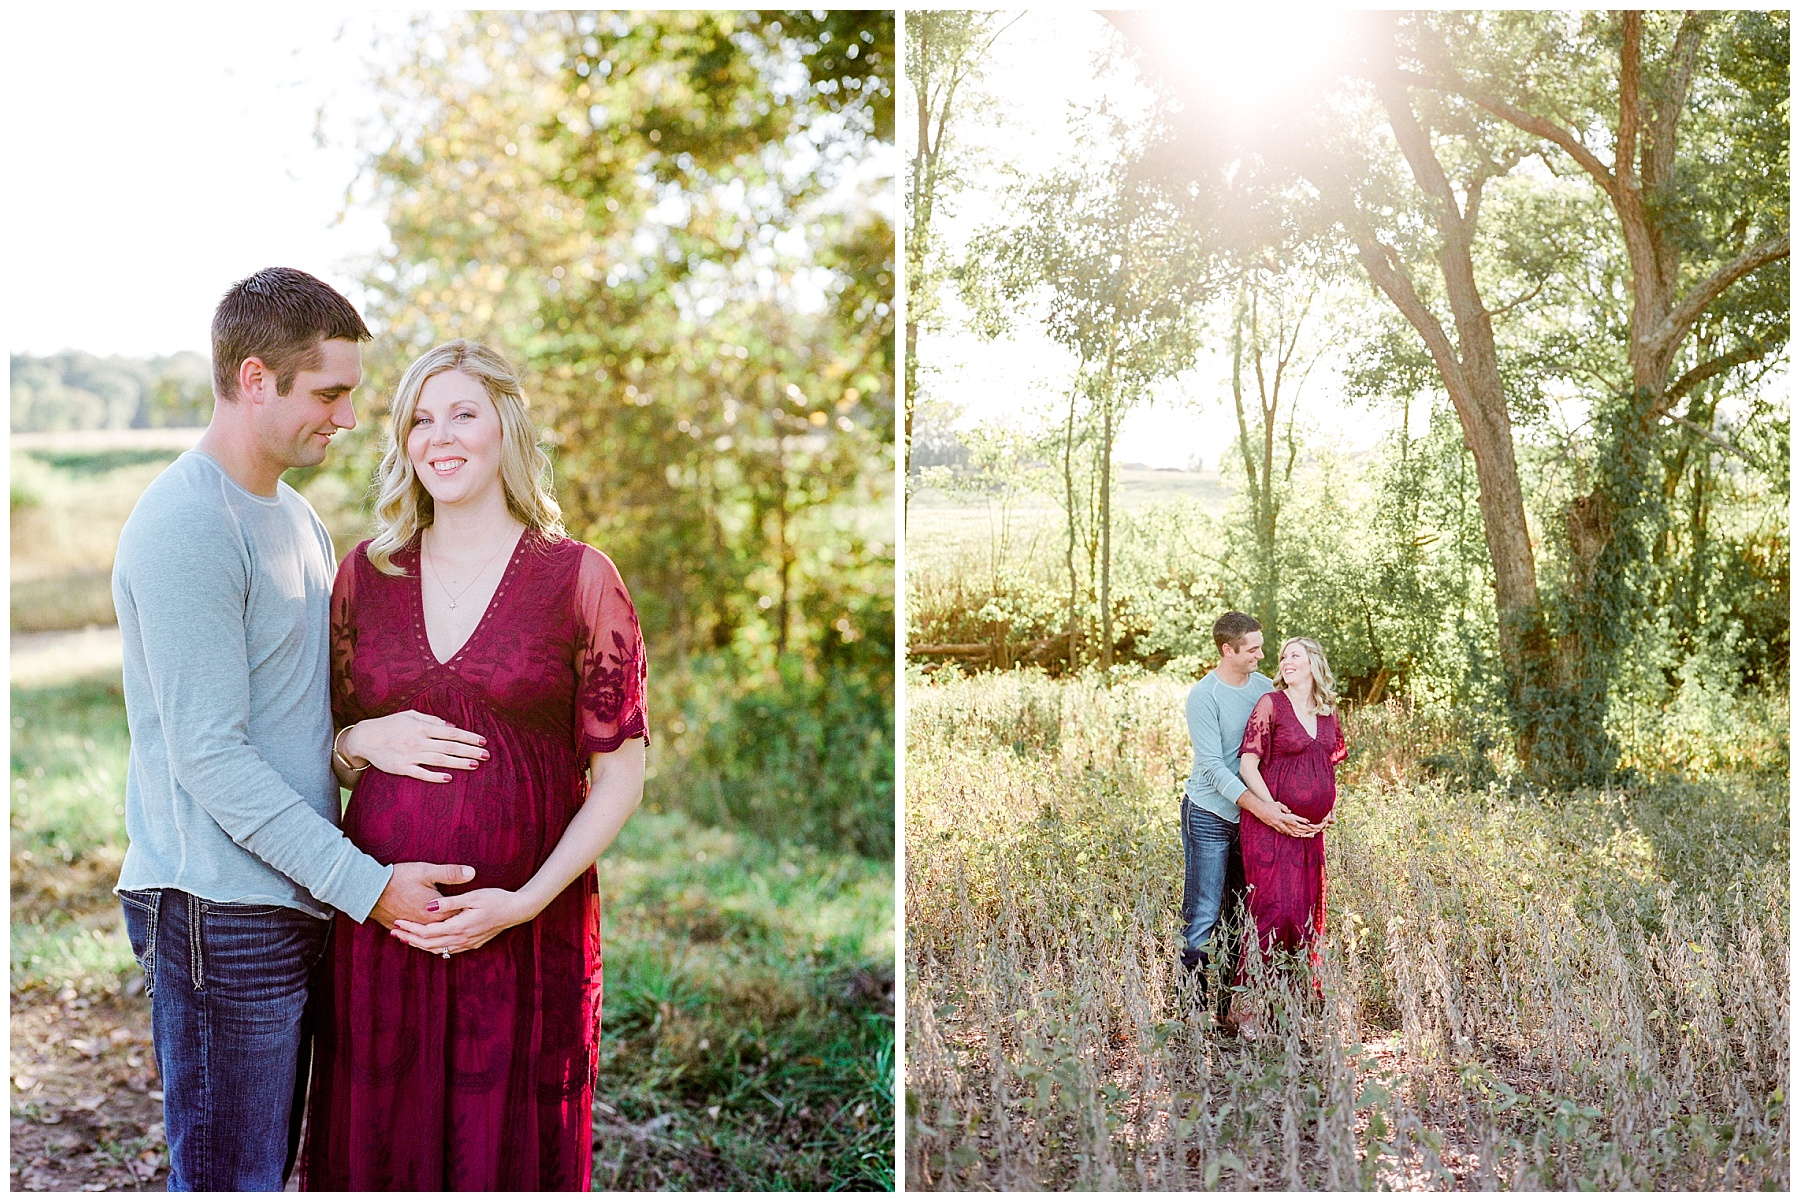 Sunset Maternity Session on Family Farm in Mid Missouri by Kelsi Kliethermes Photography_0011.jpg